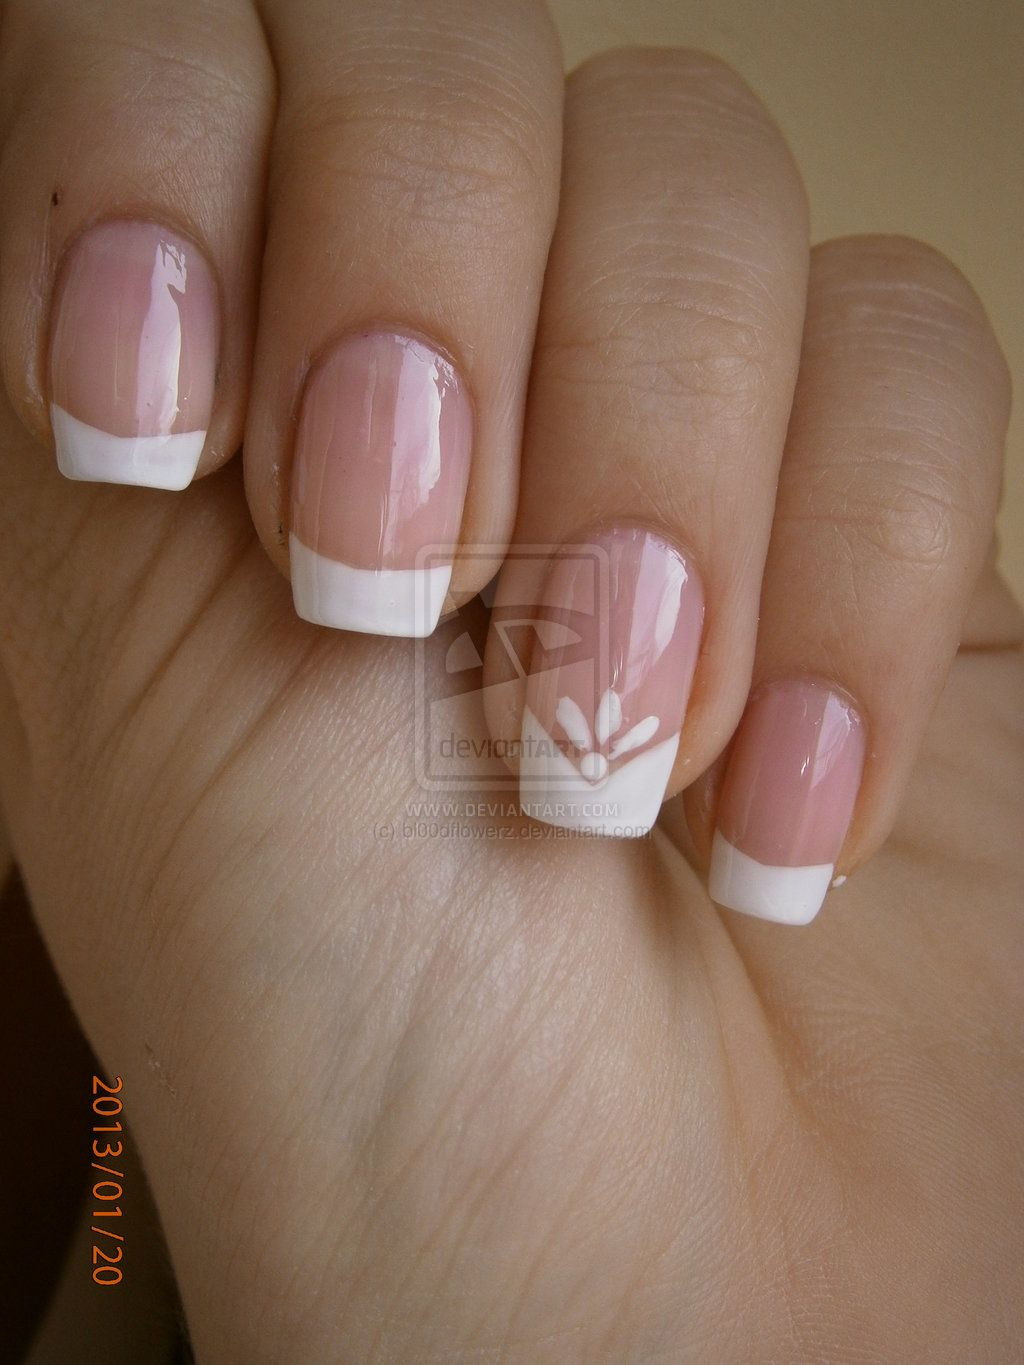 french manicure designs pictures | ... nail art 2013 2014 bl00dflowerz french manicure again add a